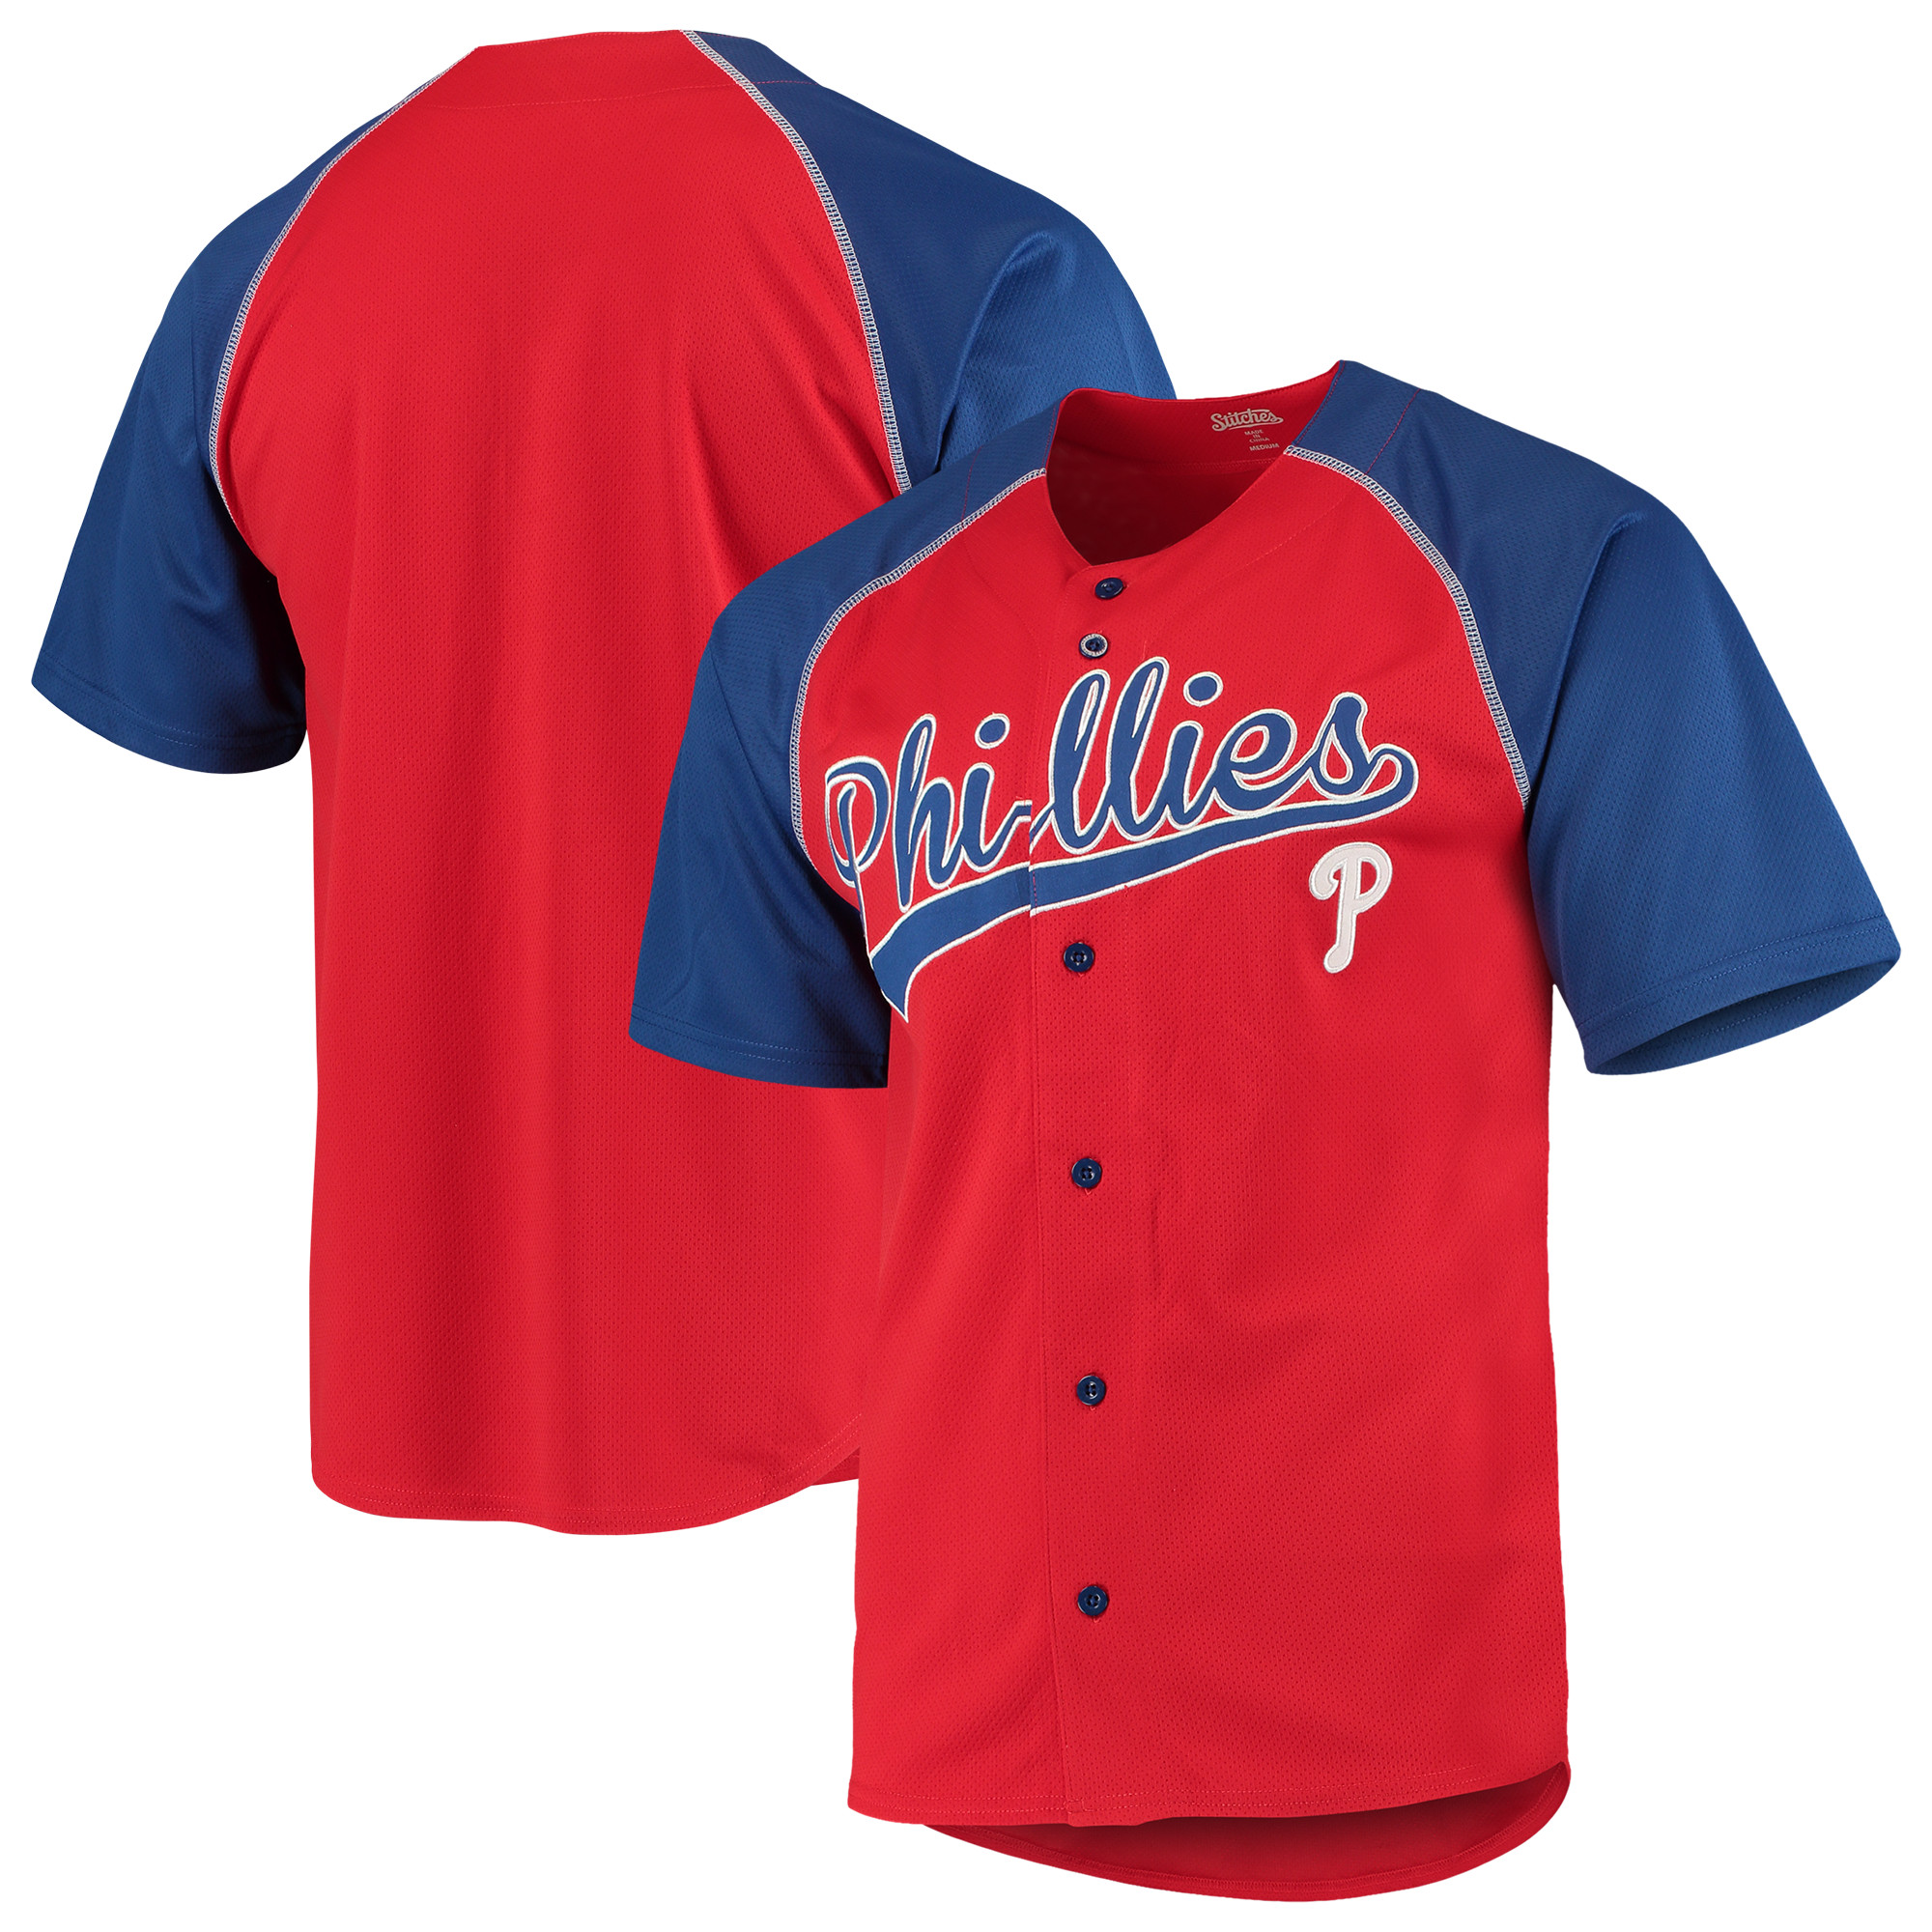 Philadelphia Phillies Stitches Team Jersey - Red/Royal